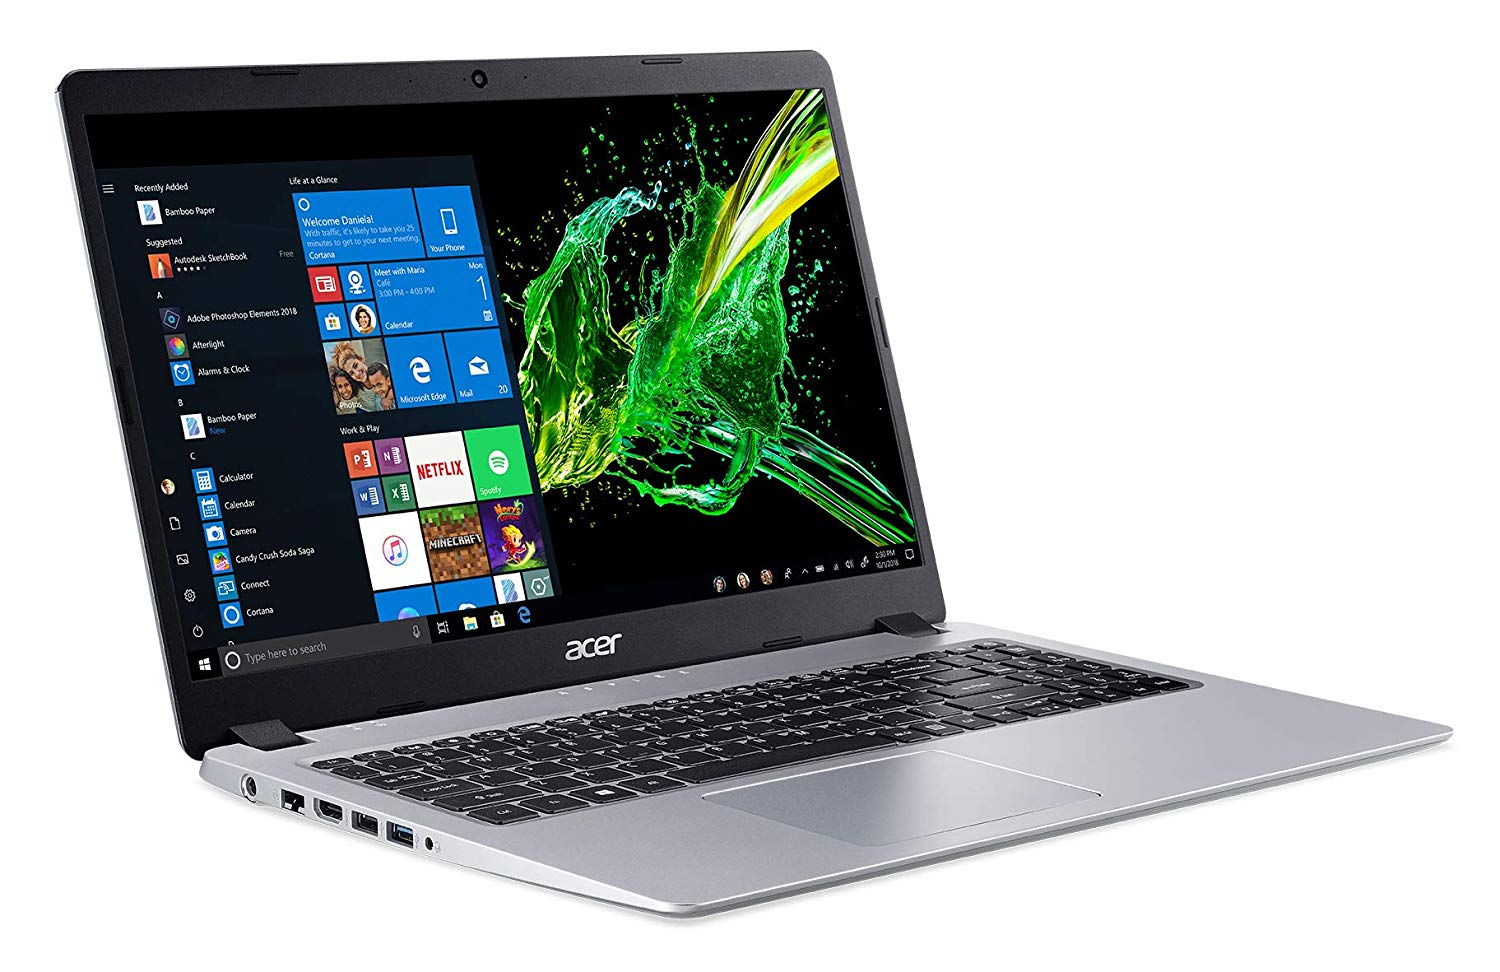 Acer Aspire 5 review